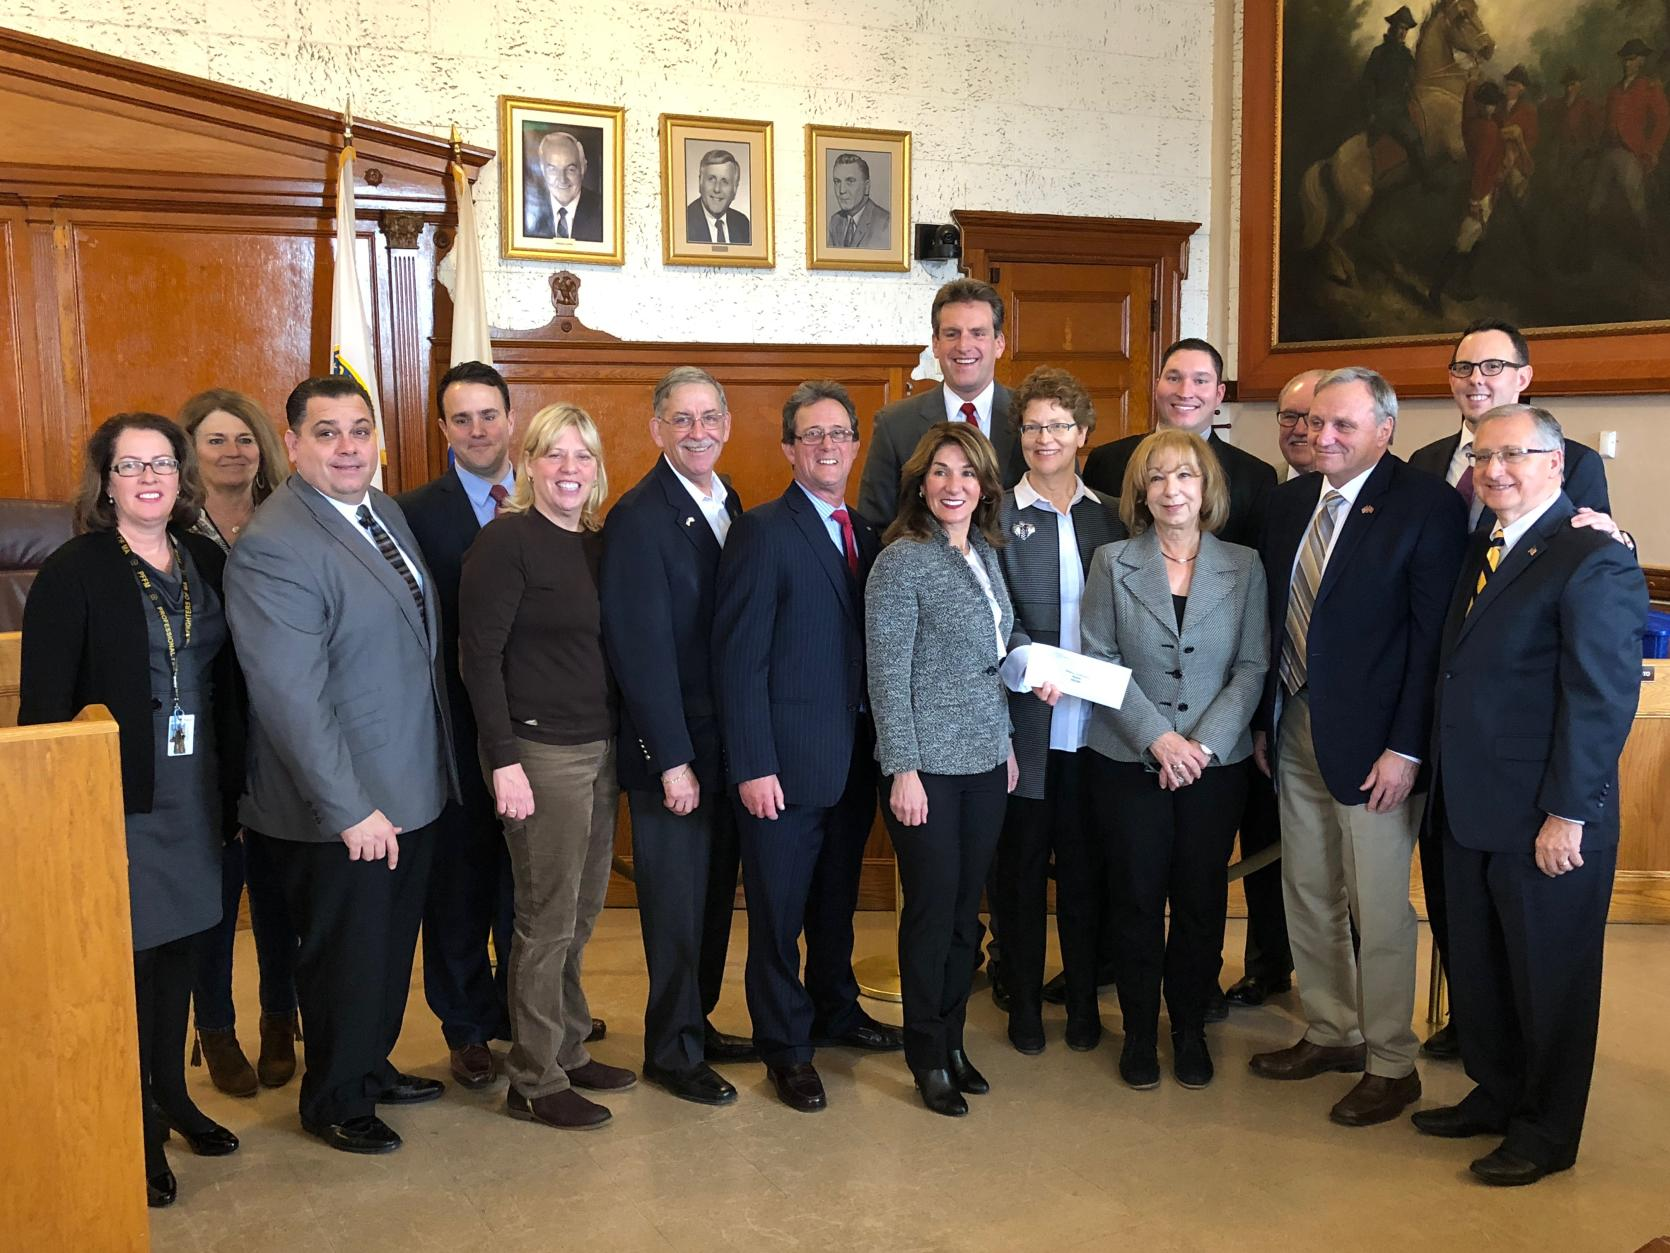 Lt. Governor Polito with Mayor Arrigo and local officials from Revere during Urban Agenda grant event.